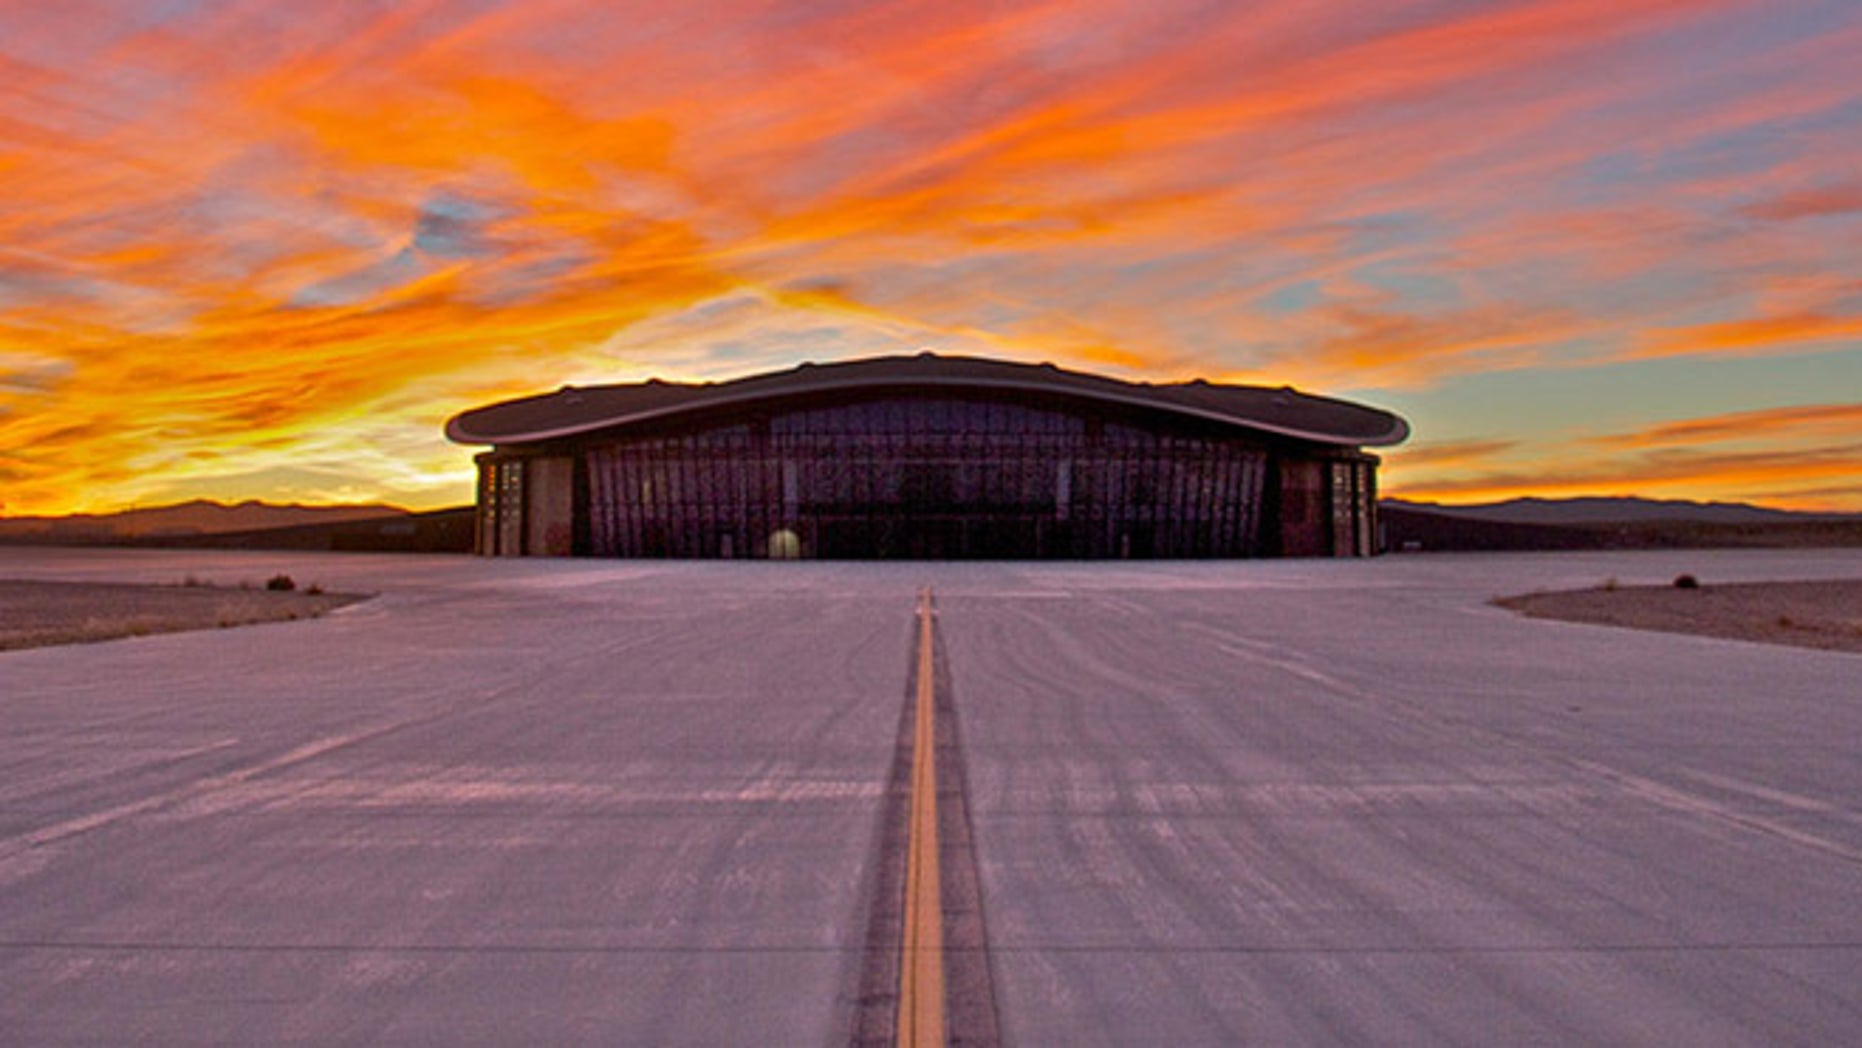 Spaceport America, the $212-million taxpayer-funded project in southern New Mexico, received criticism on two different fronts this week.